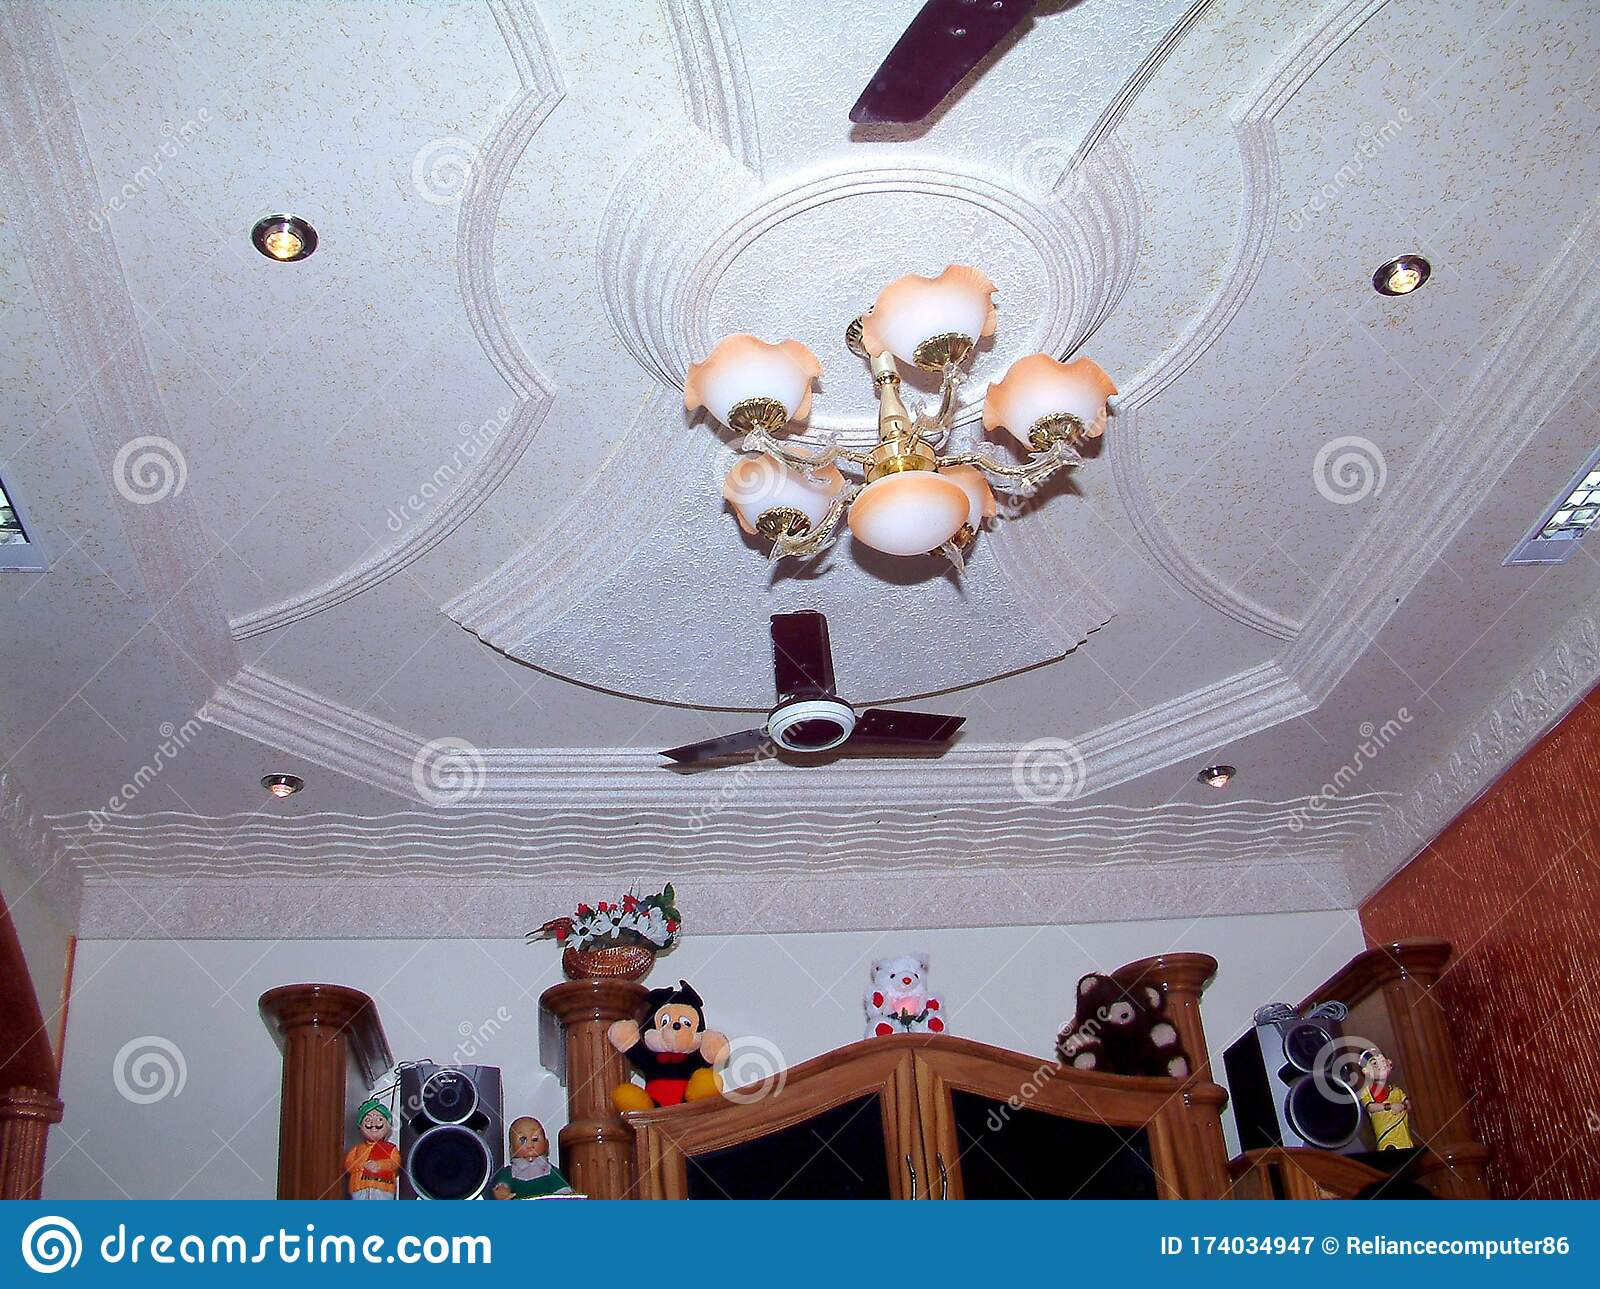 Search Results Images For Pop Ceiling Design Some Creative Interior Design Ideas Stock Image Image Of Ceil Picture 174034947